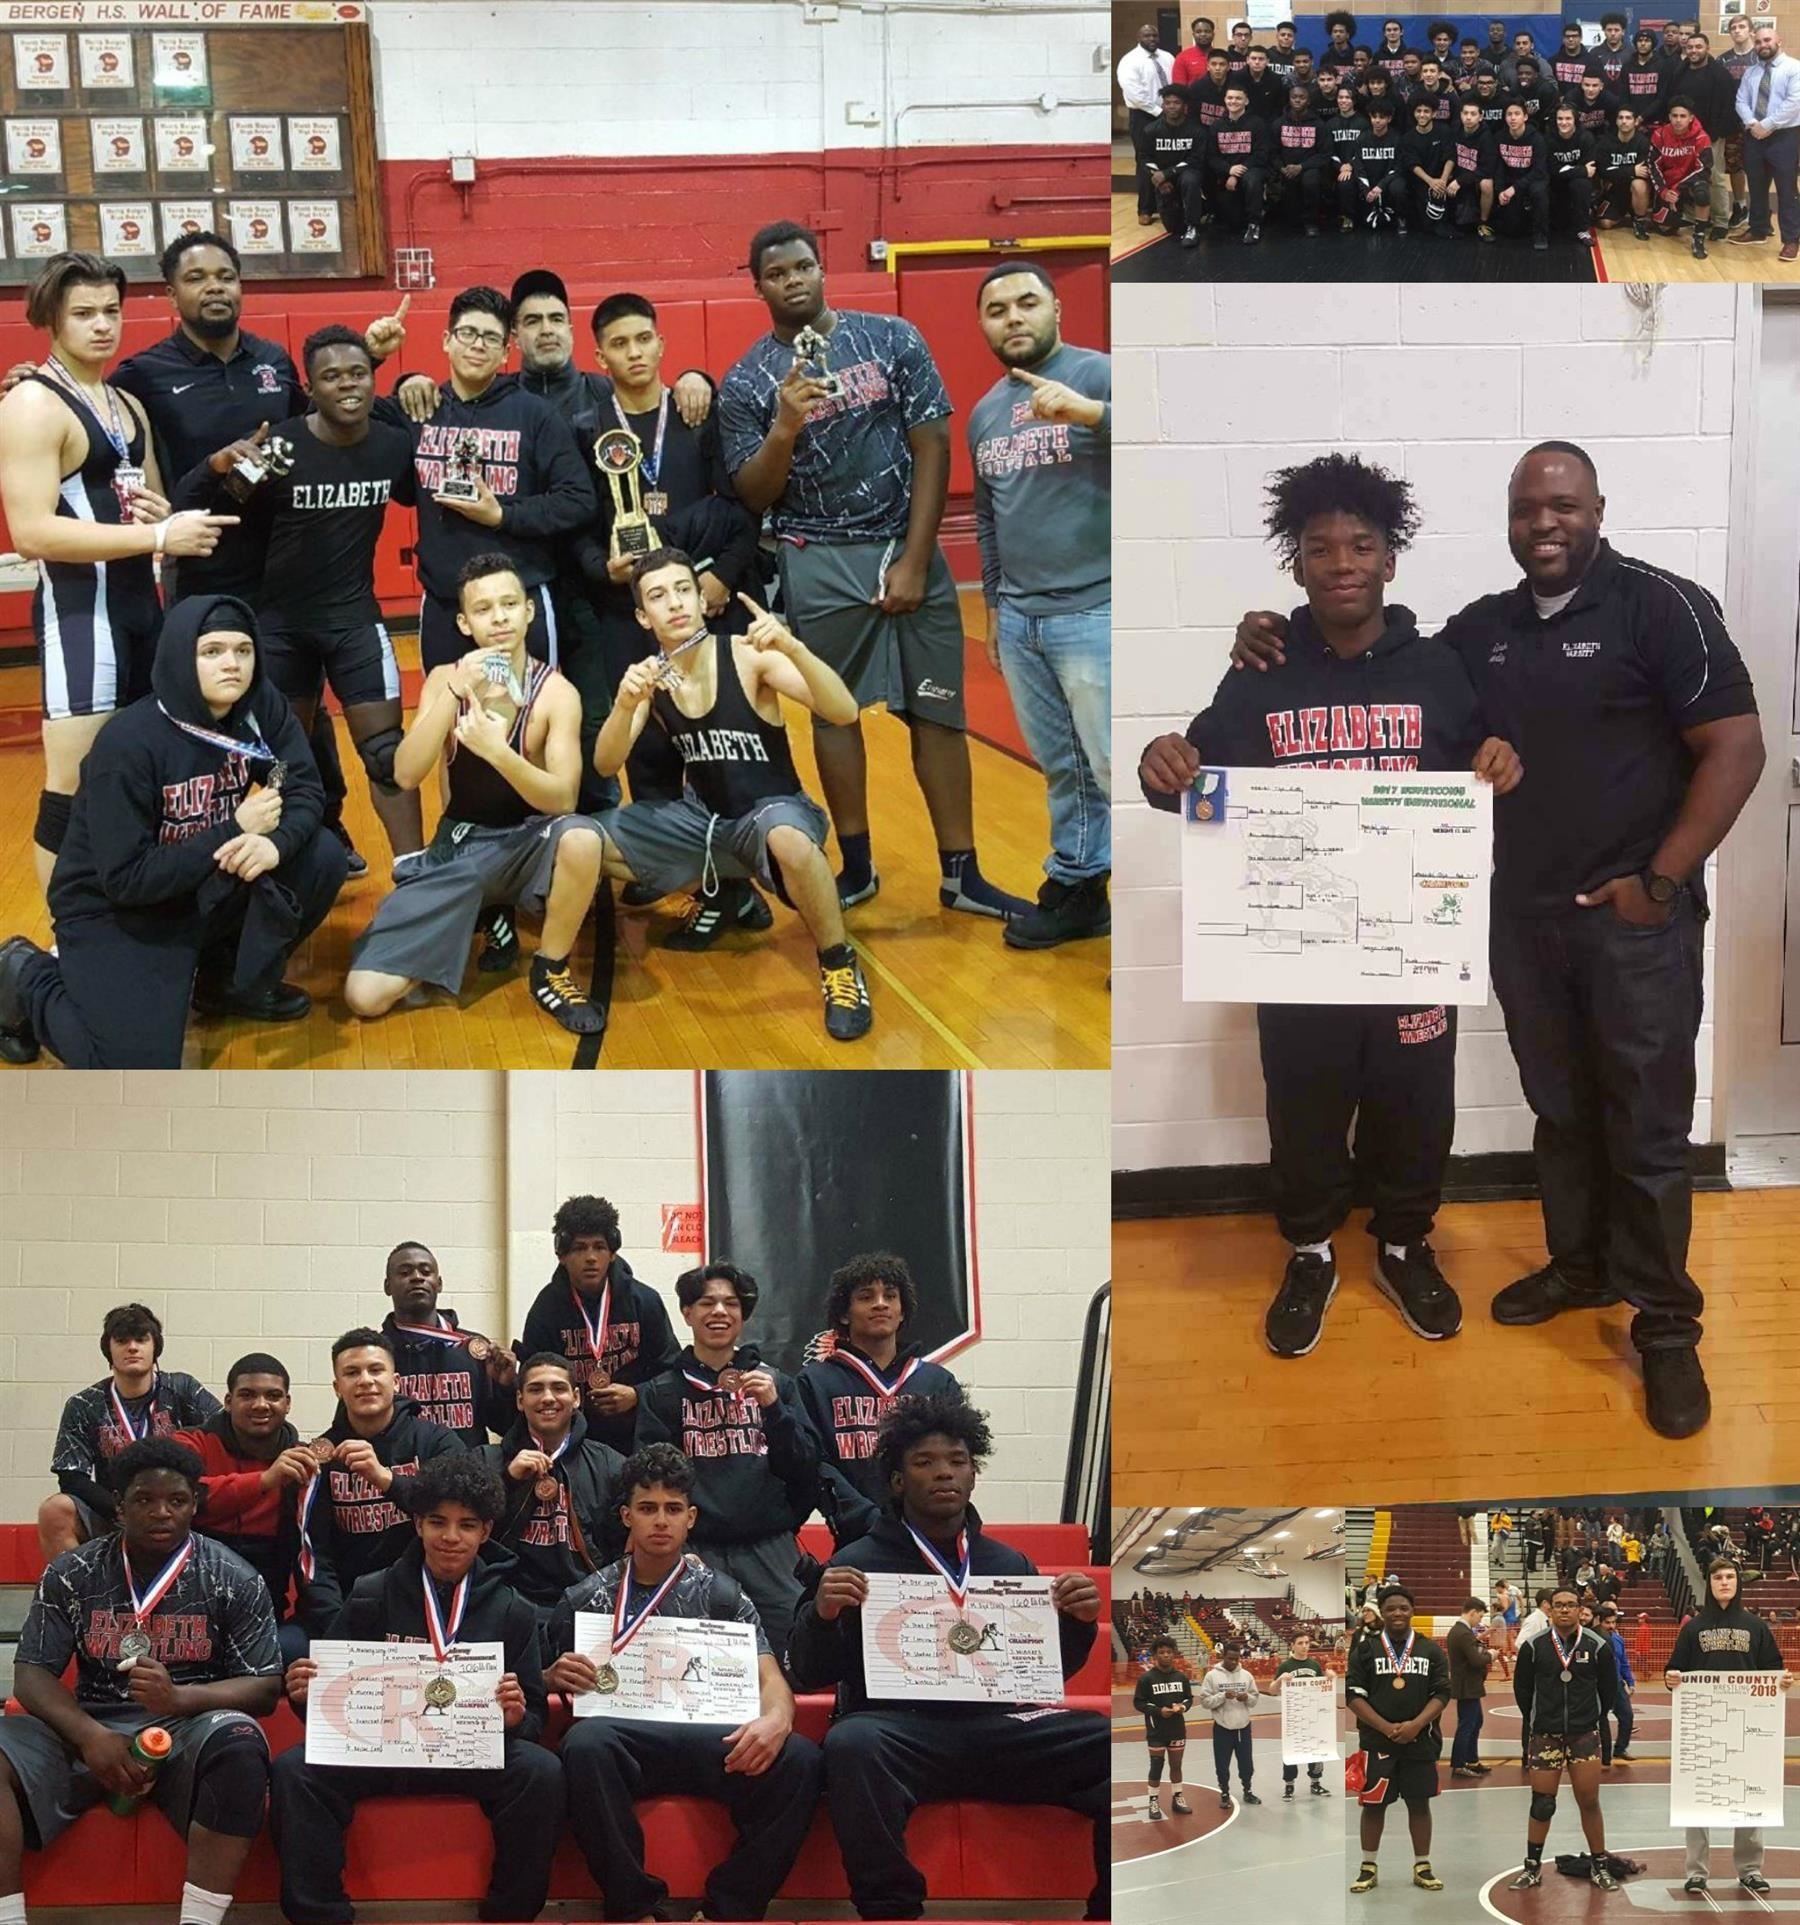 EHS WRESTLING ACHIEVEMENTS